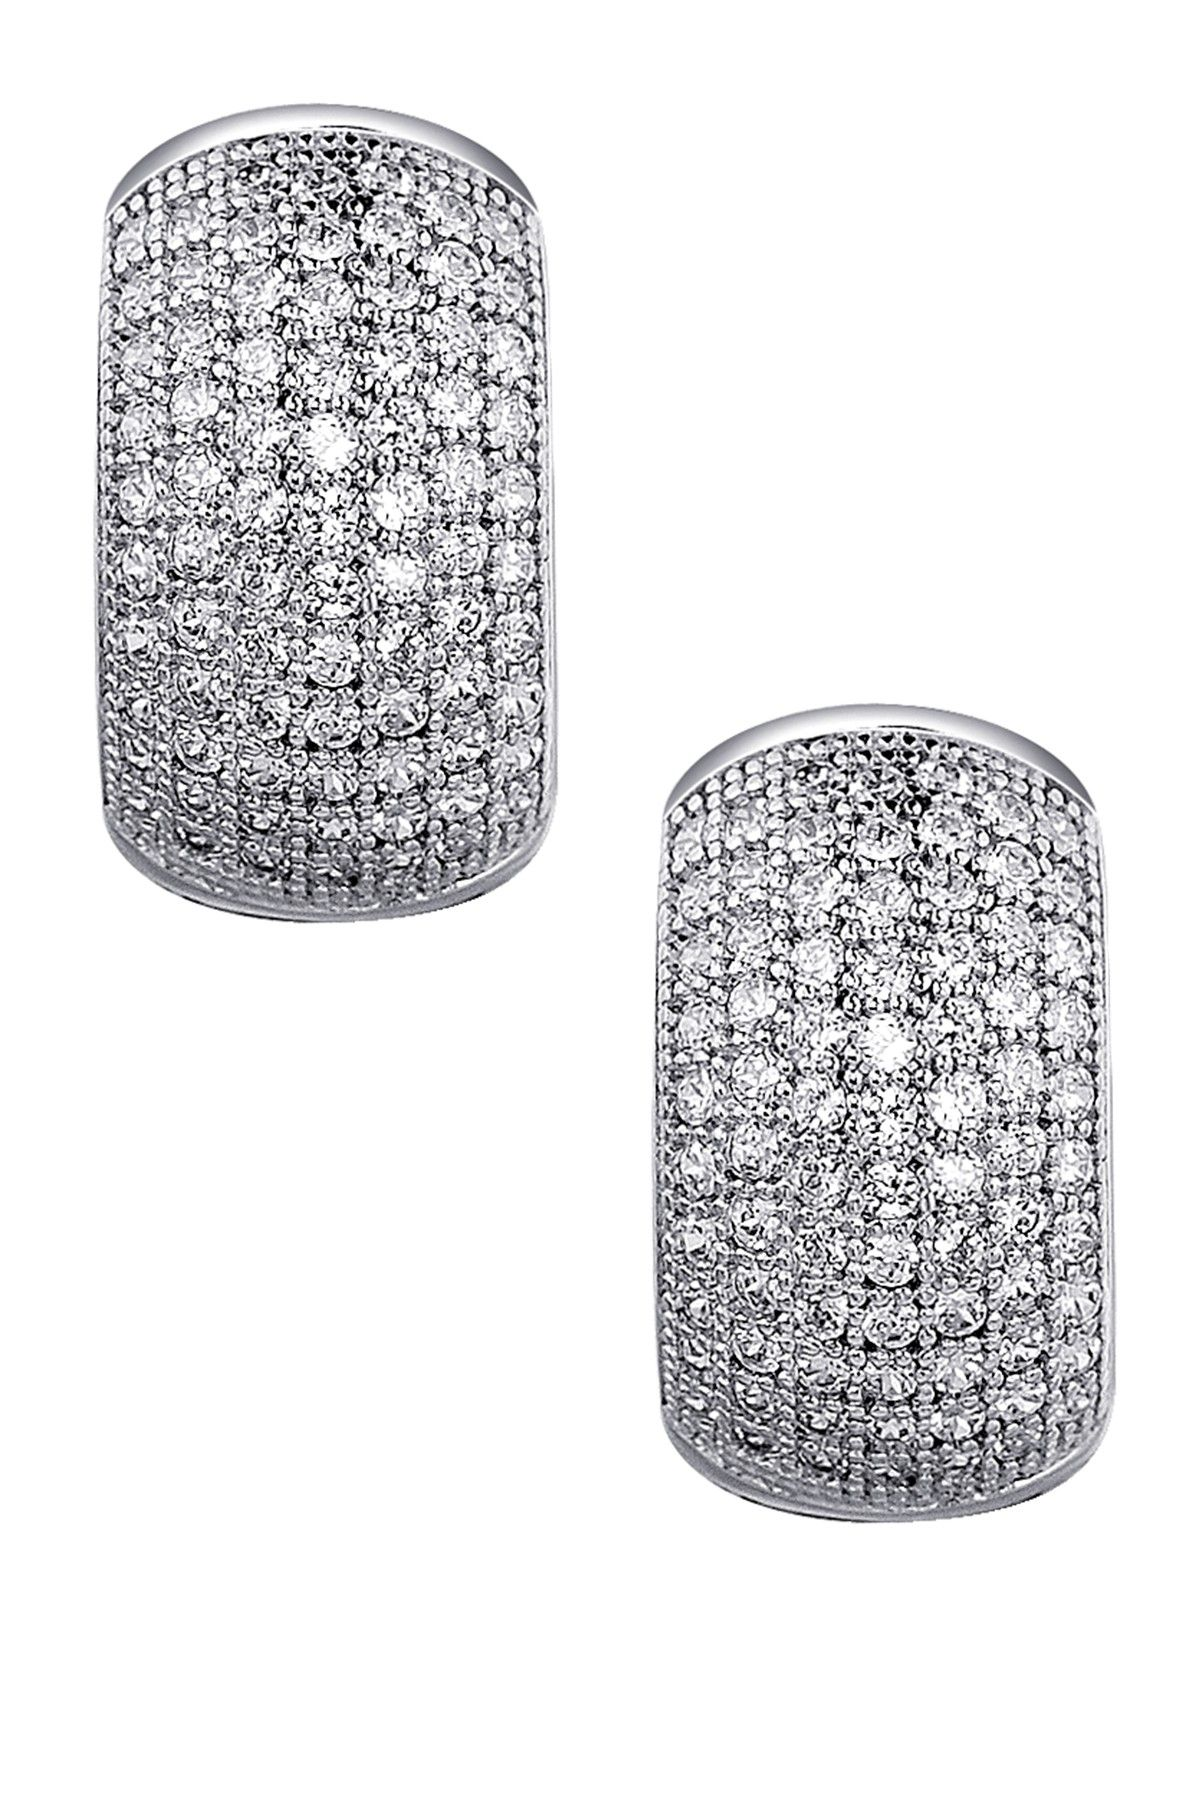 7643c72d8 LaFonn Platinum Plated Sterling Silver Micro Pave Simulated Diamond Small  Huggie Earrings